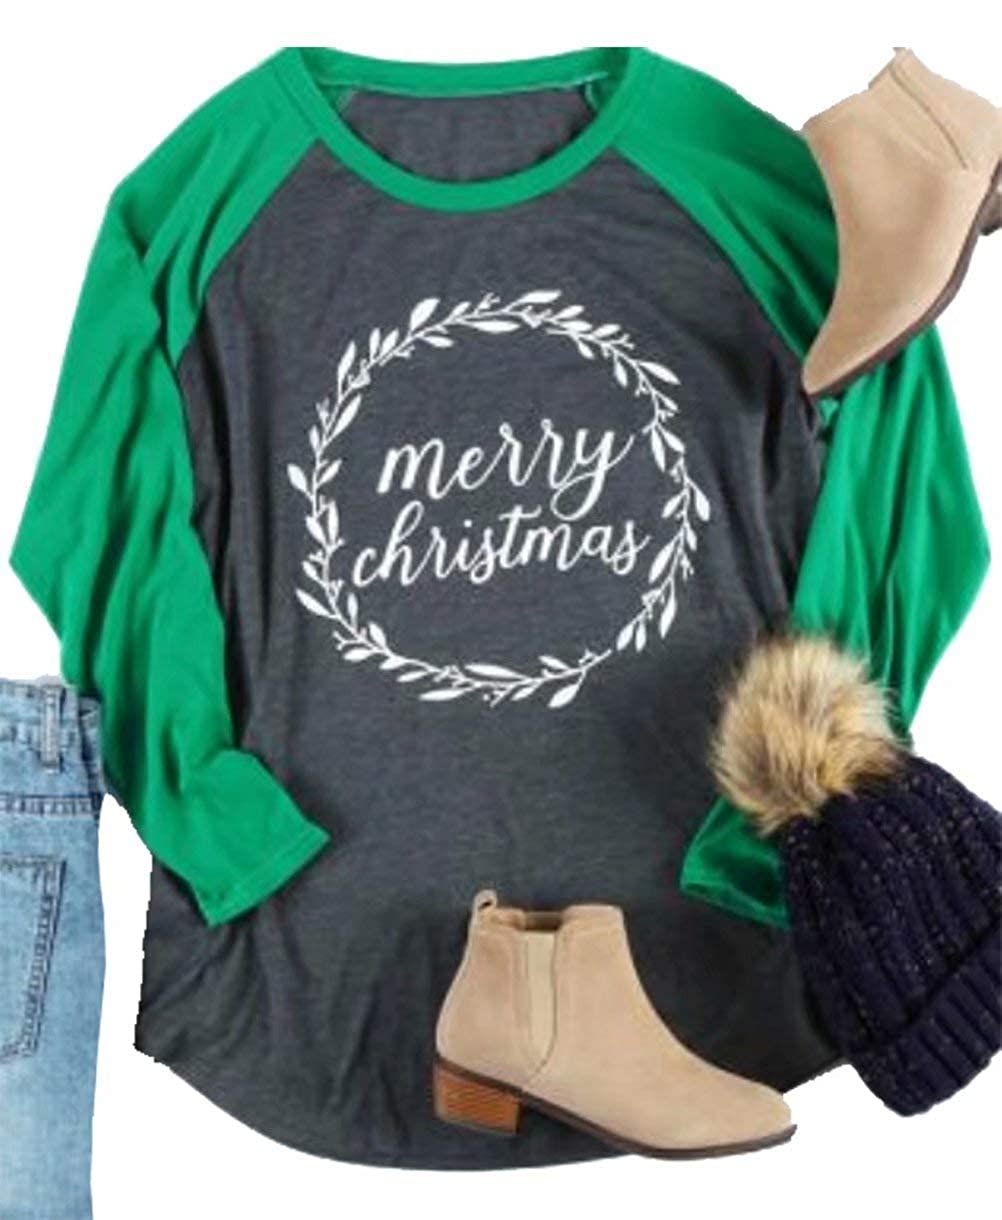 bf9a37016eb Amazon.com  Plus Size Merry Christmas Baseball T-Shirt Women 3 4 Sleeve  Holiday Splicing Tee Tops  Clothing